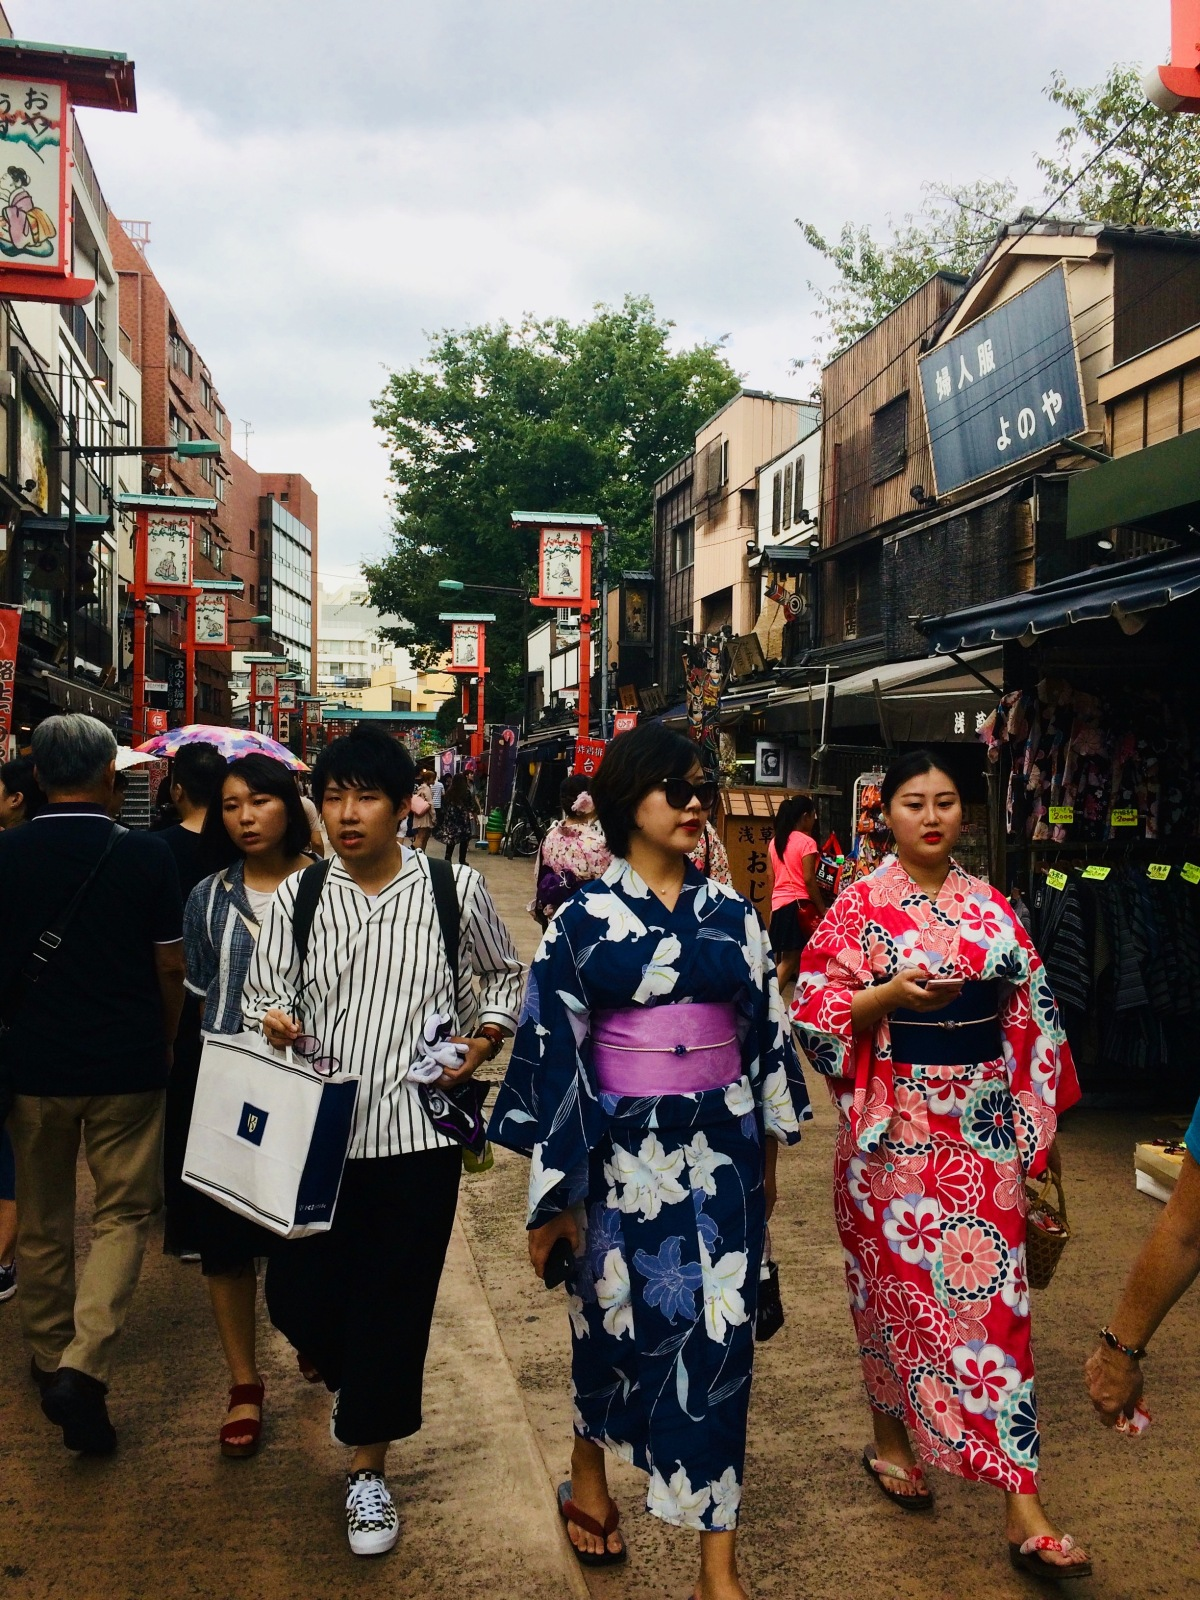 Tokyo: where past and present meet in thefuture